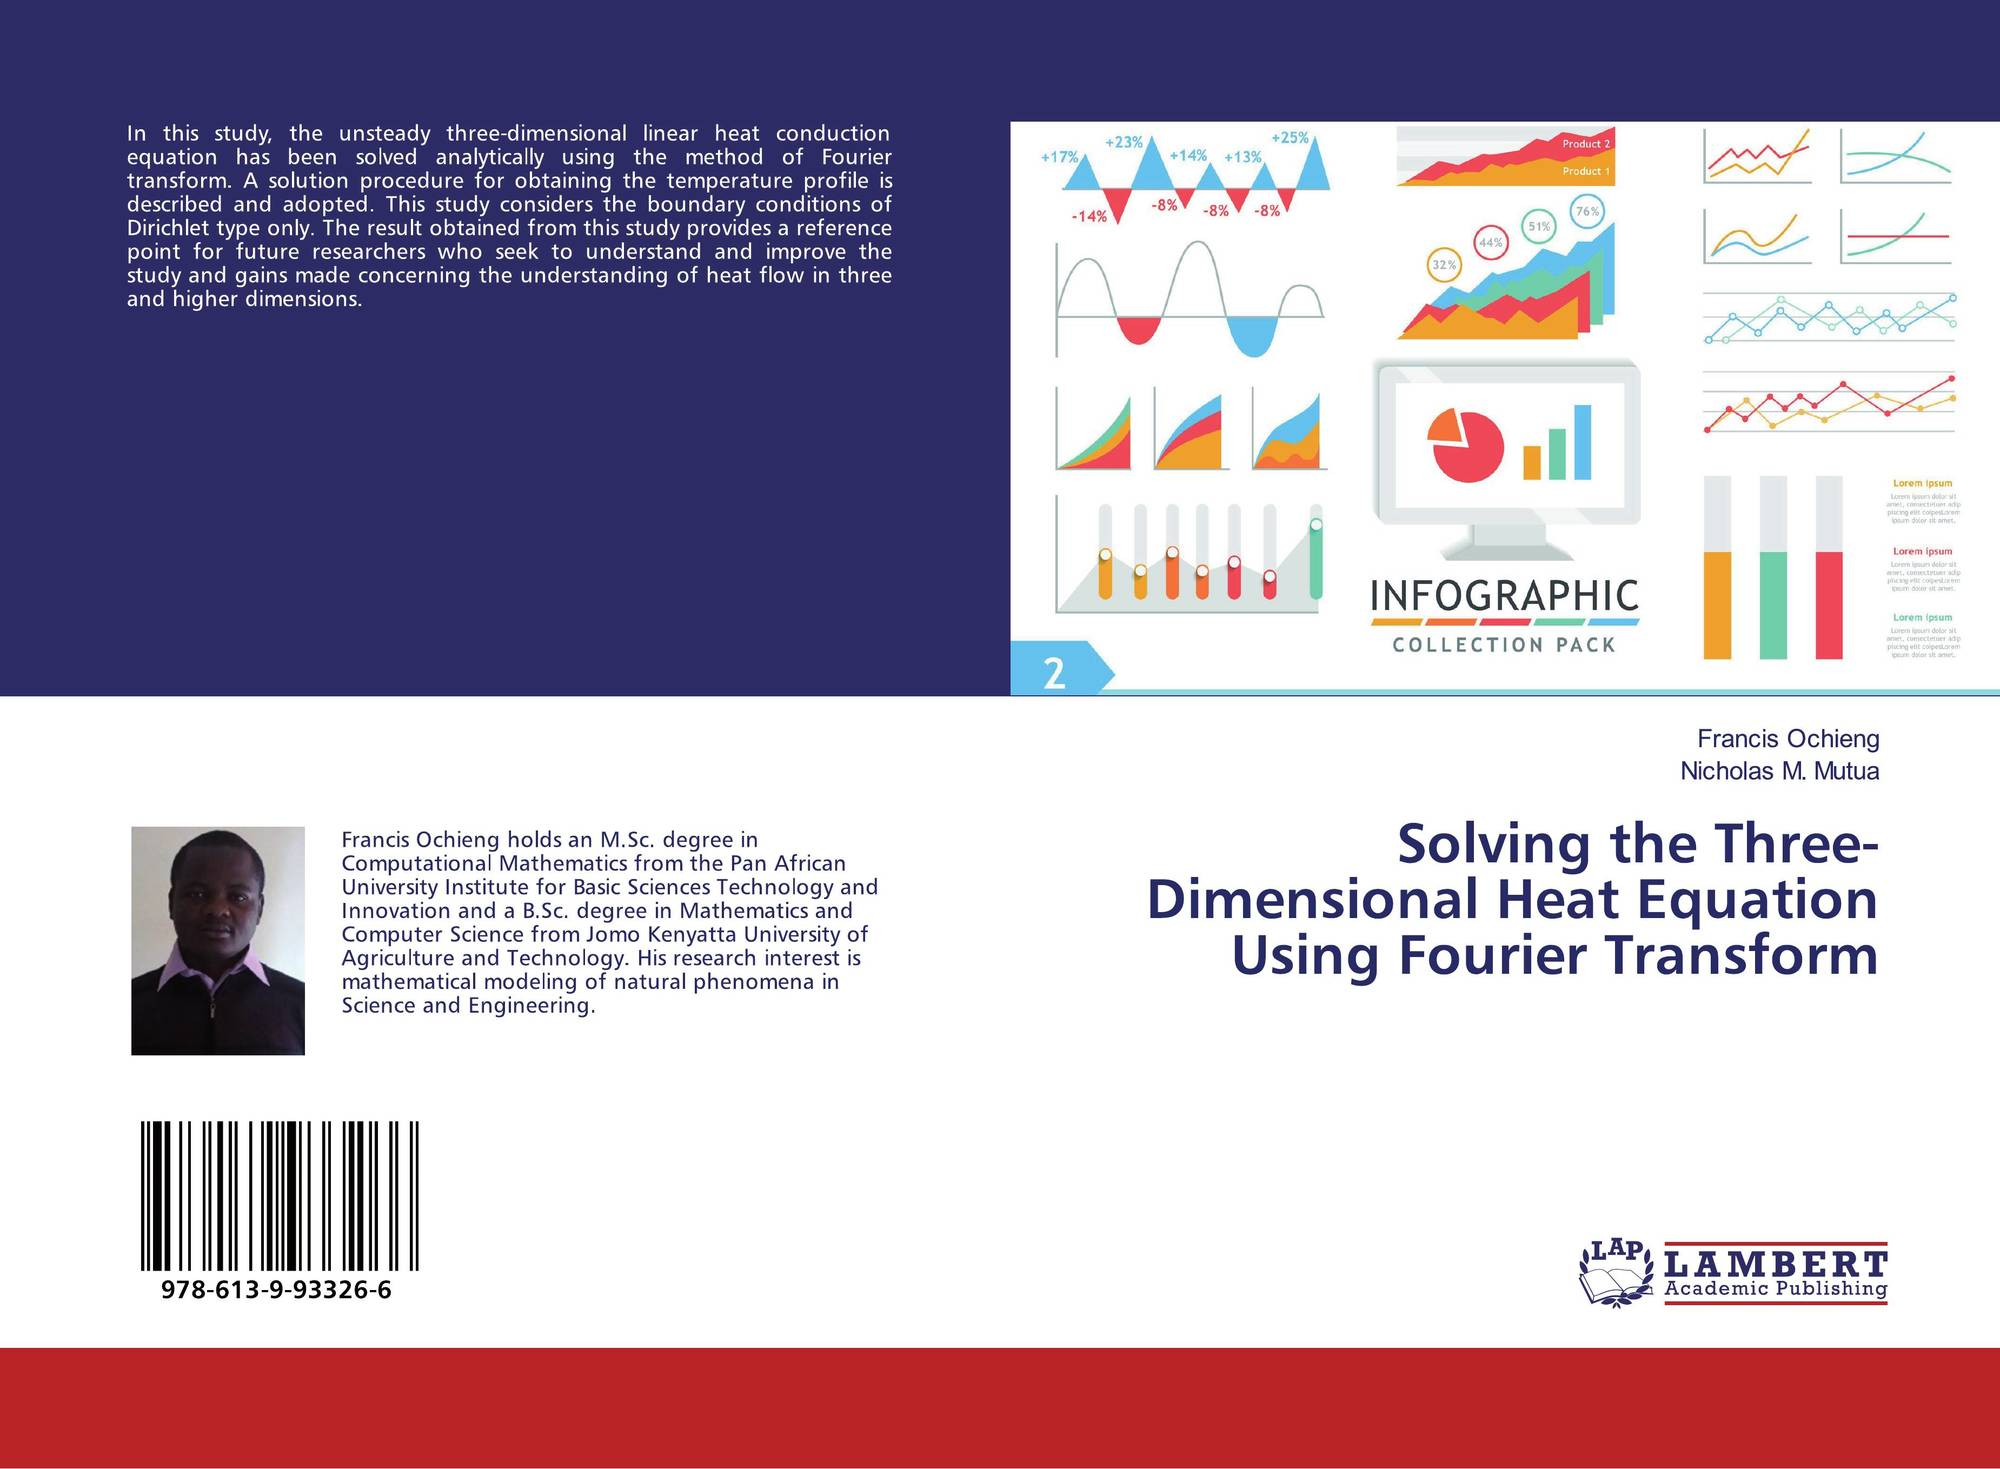 Solving the Three-Dimensional Heat Equation Using Fourier